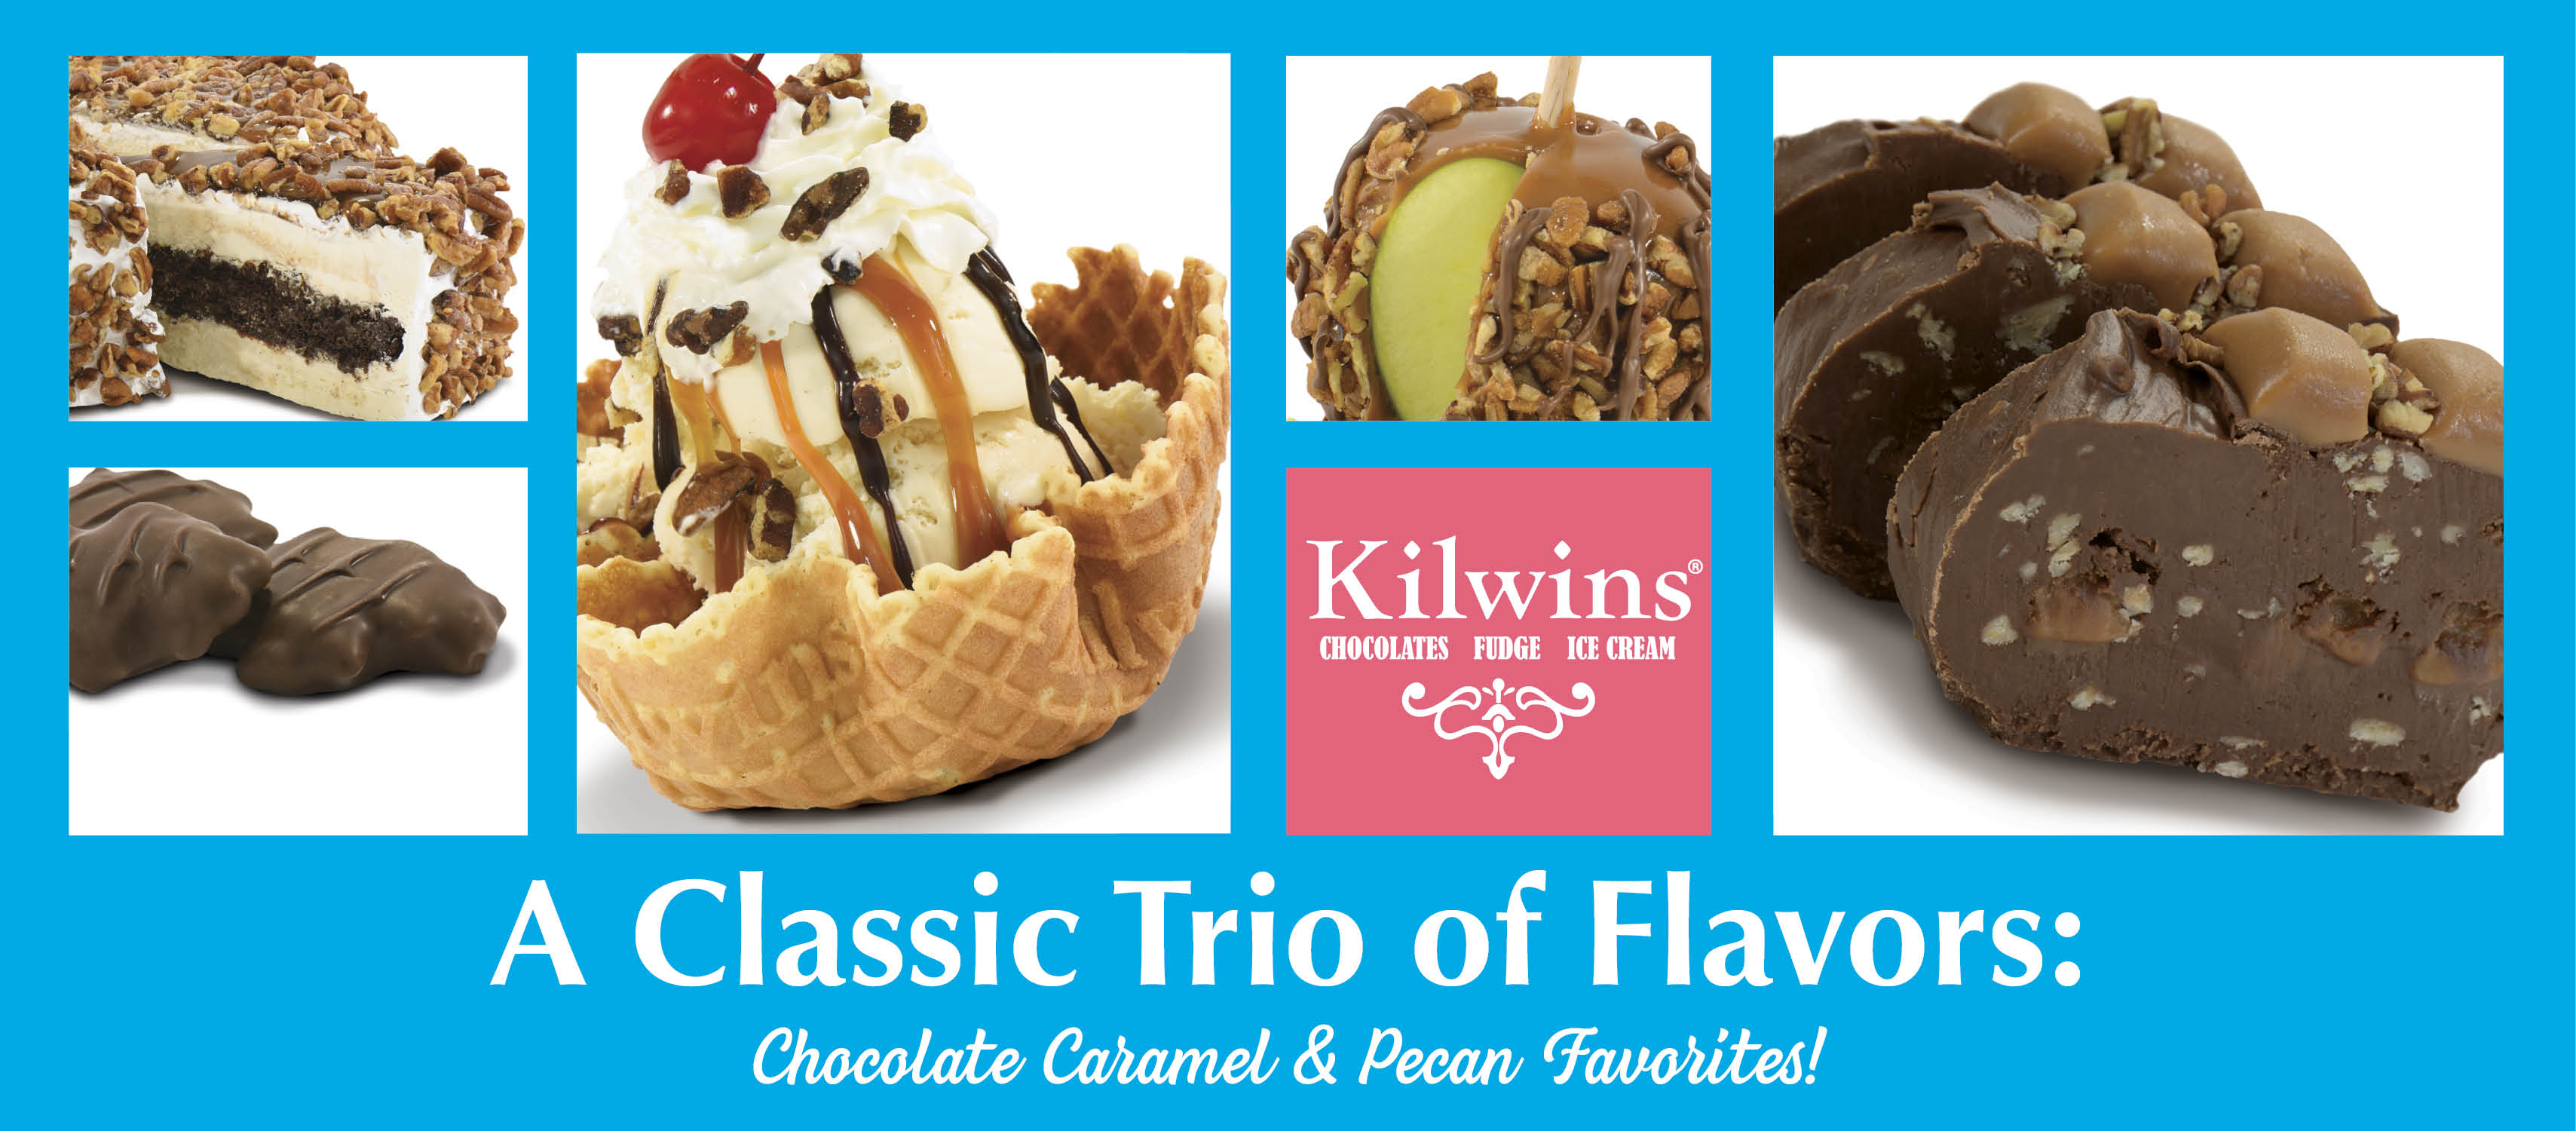 Pictures of a Kilwins treats featuring pecans, caramel, and chocolate such as ice cream sundaes, cakes, turtles, and caramel apples